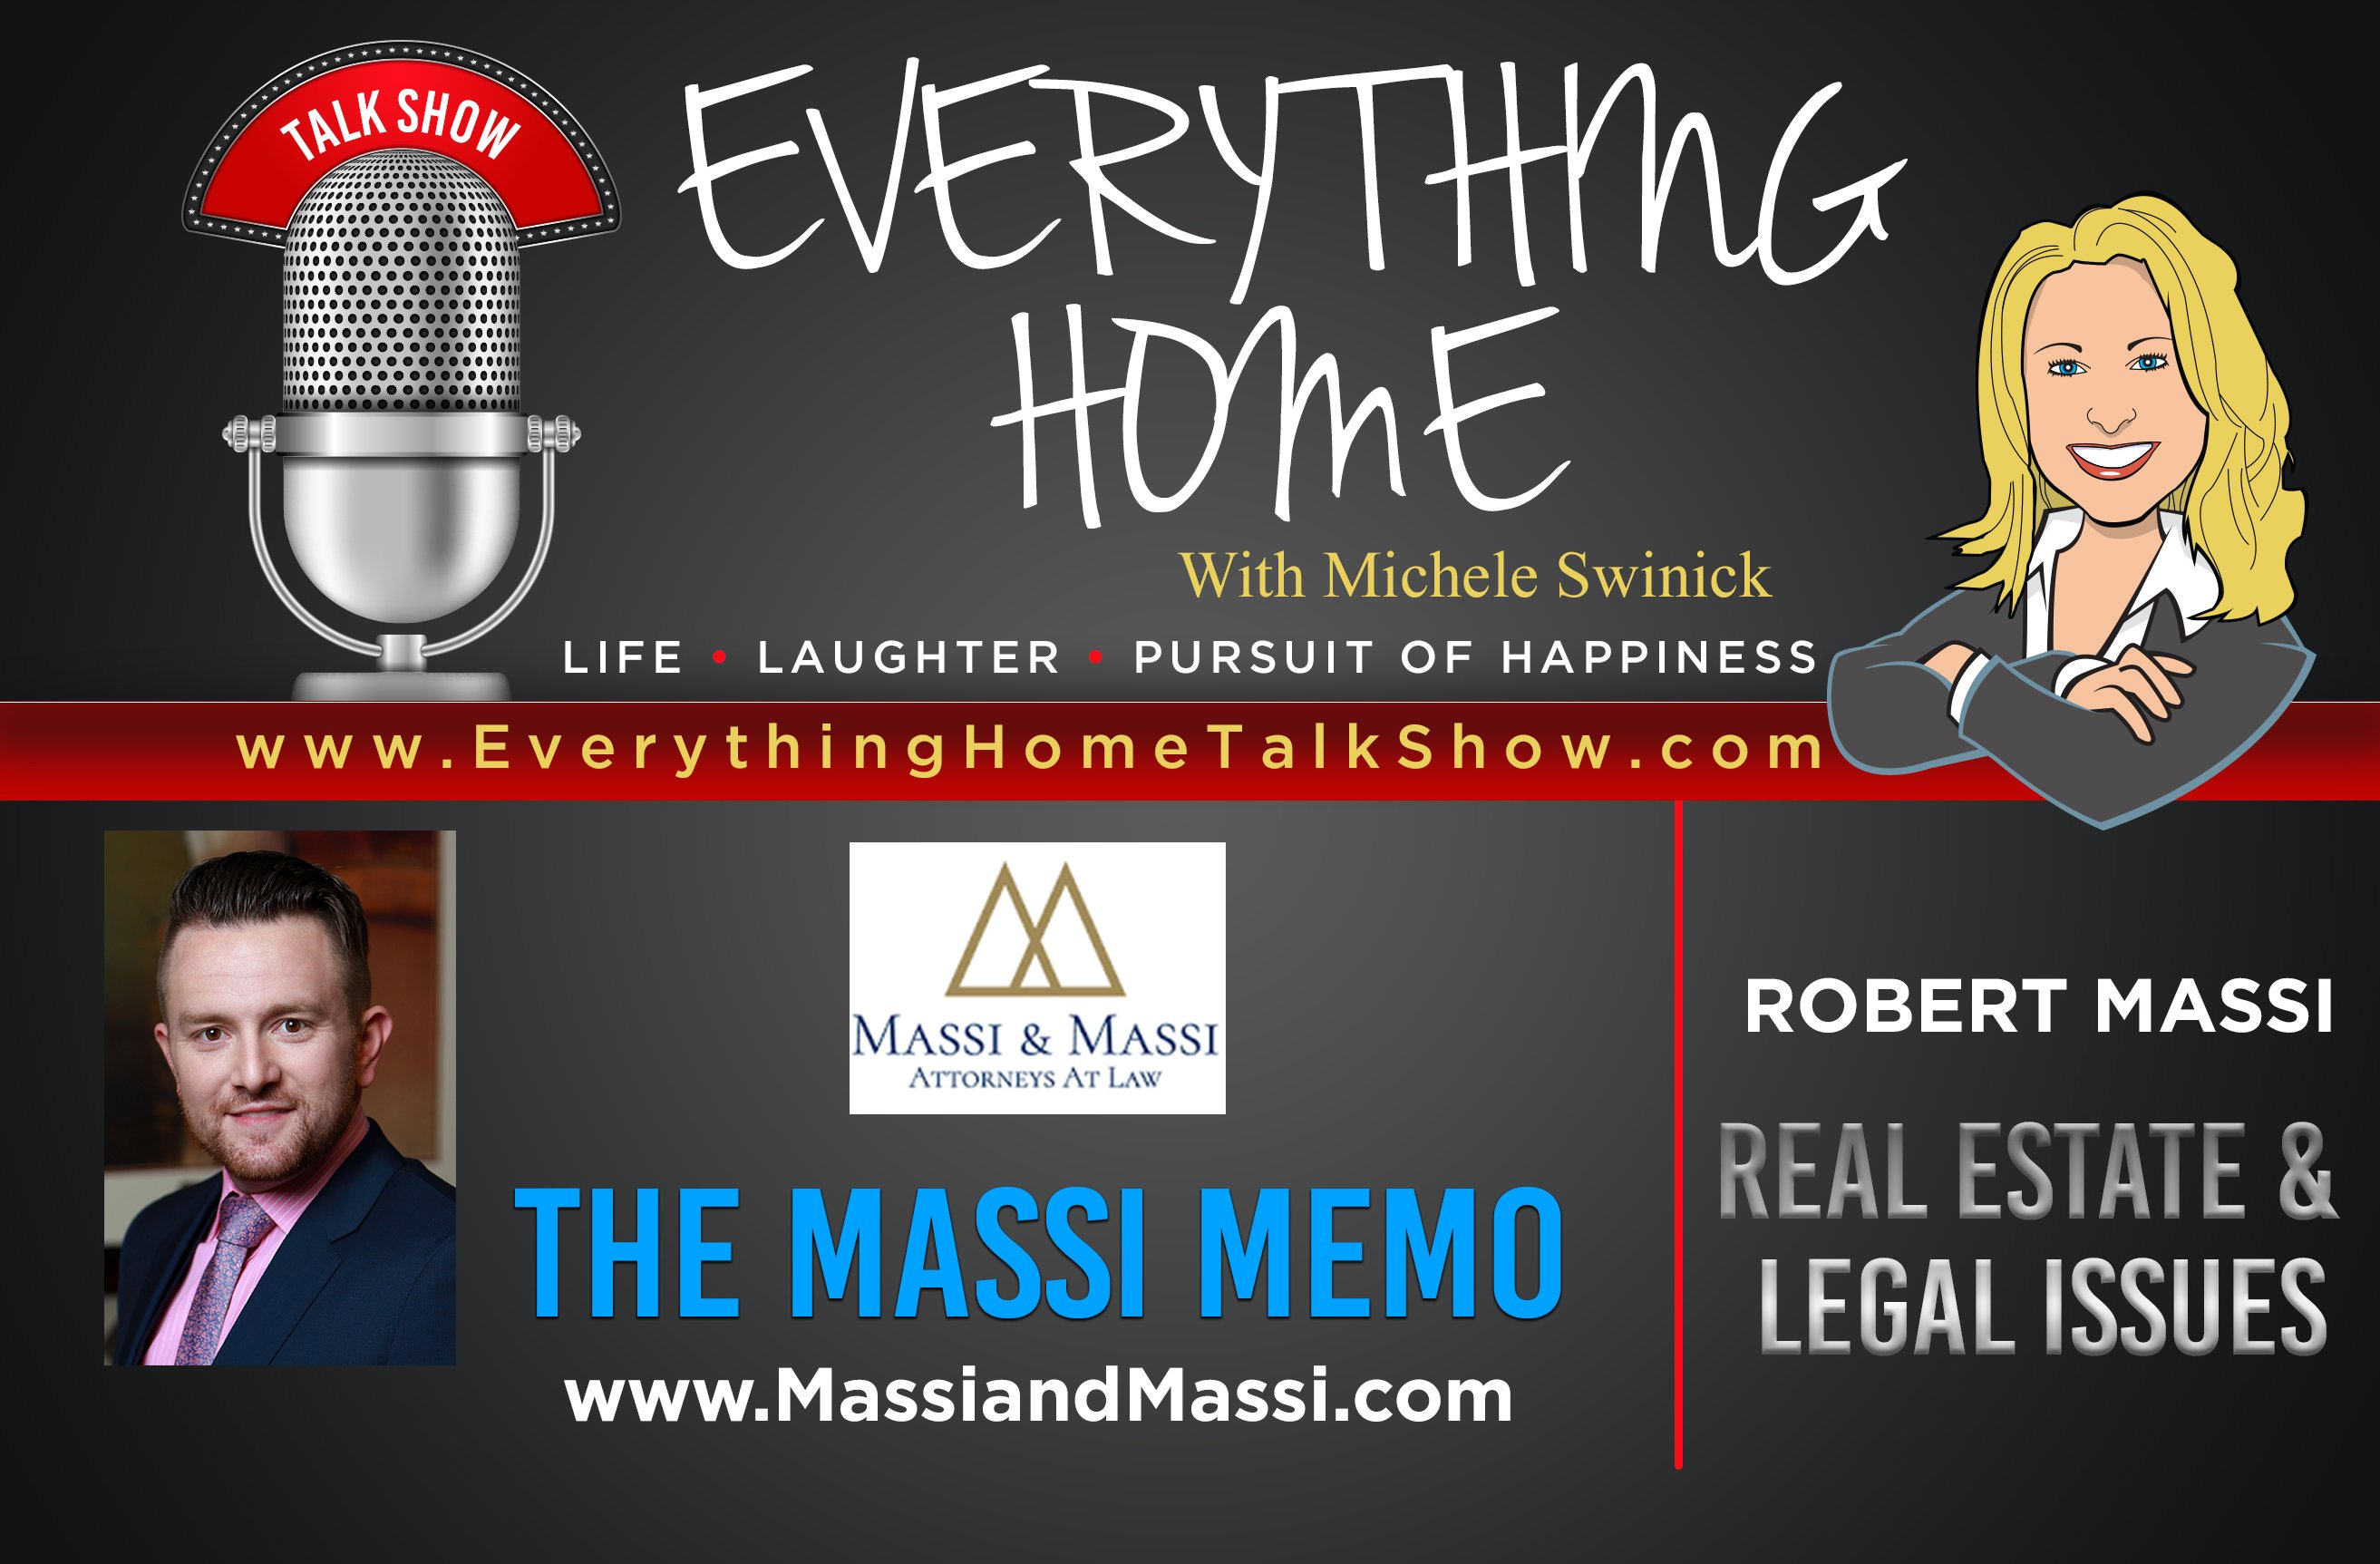 131: LEGAL ISSUES - ADVICE & LAUGHS